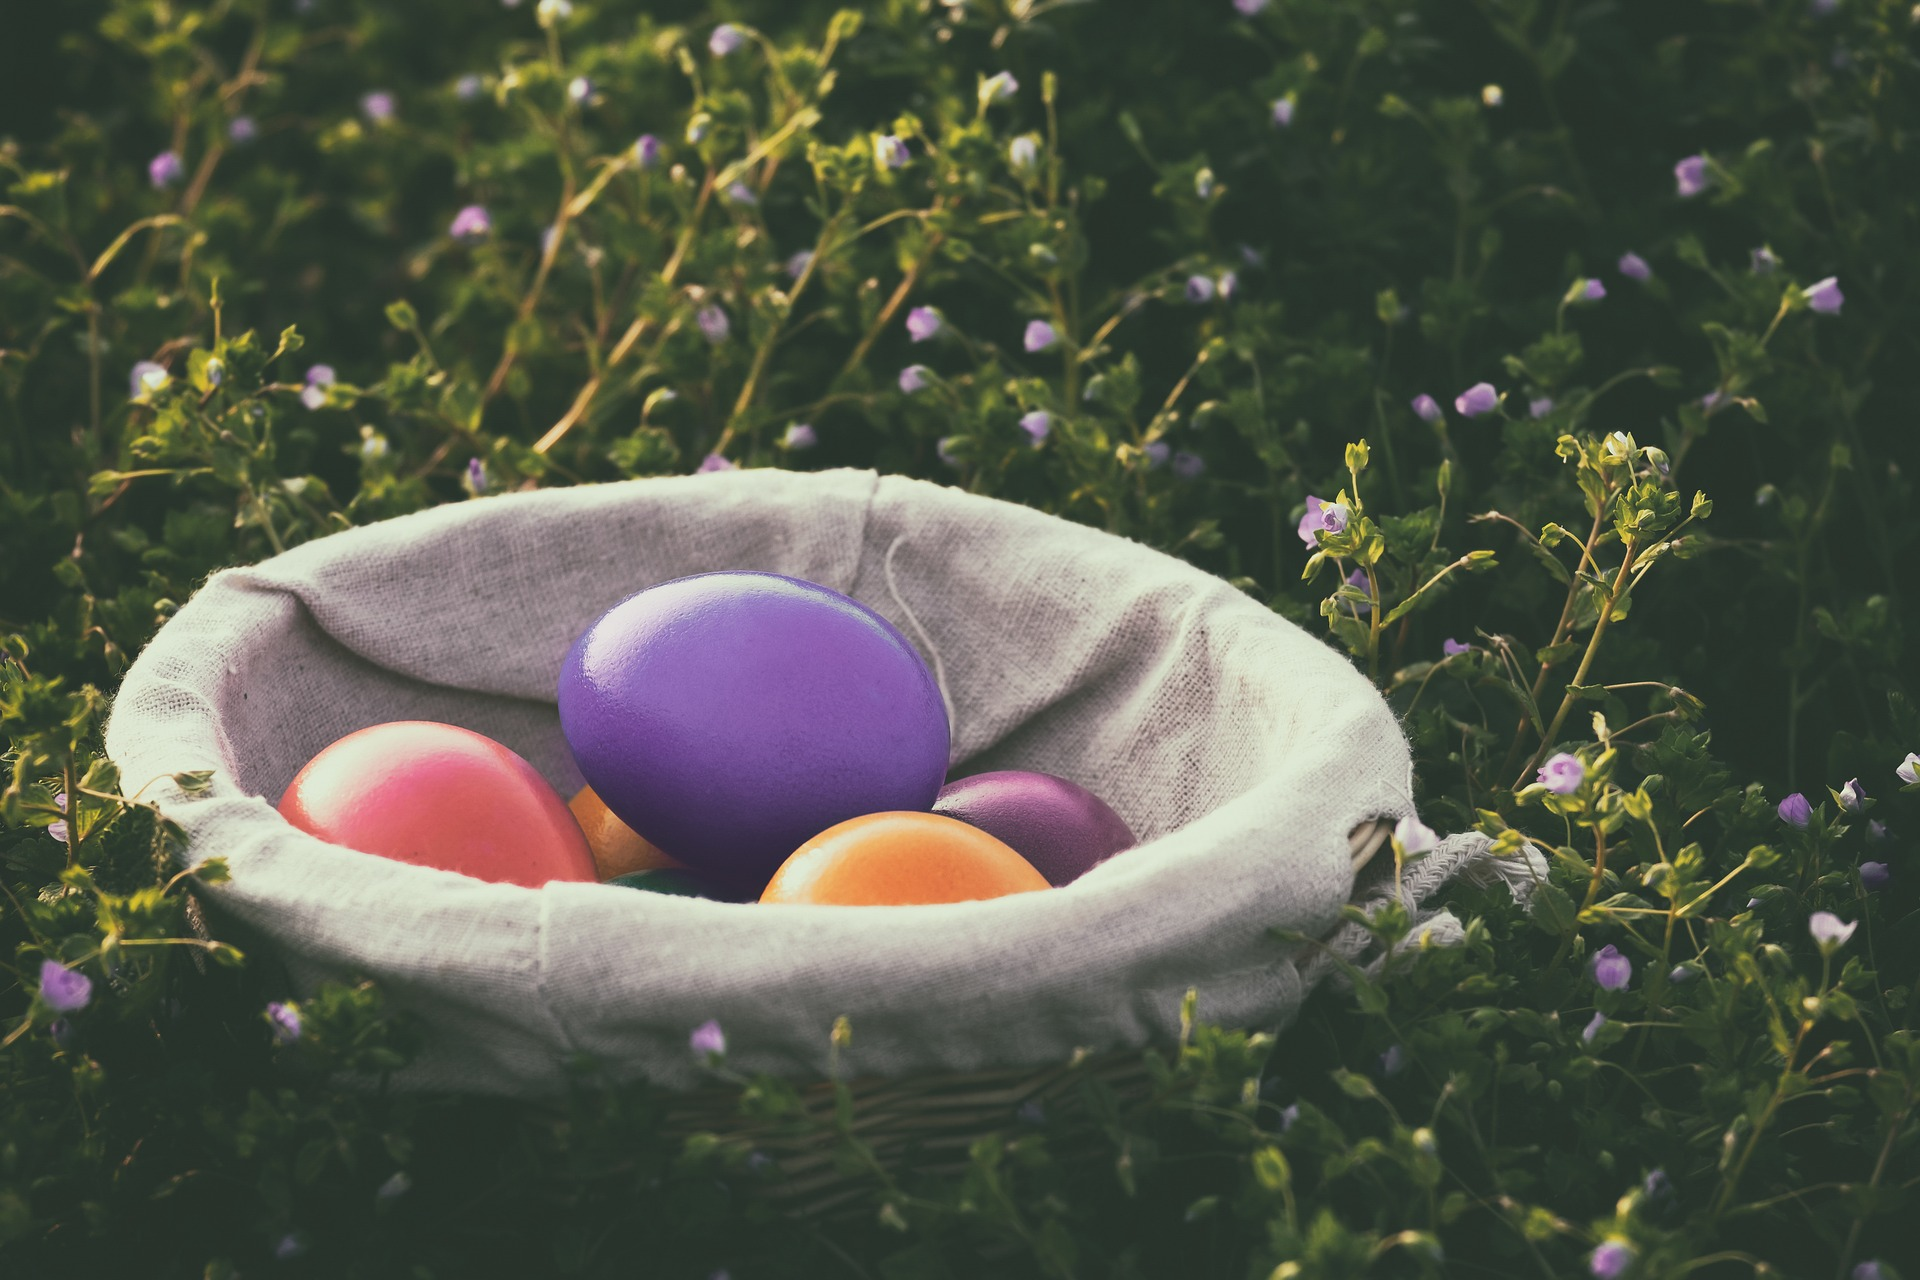 30 Non-Food Easter Basket Ideas for Your Celiac or Allergy Child